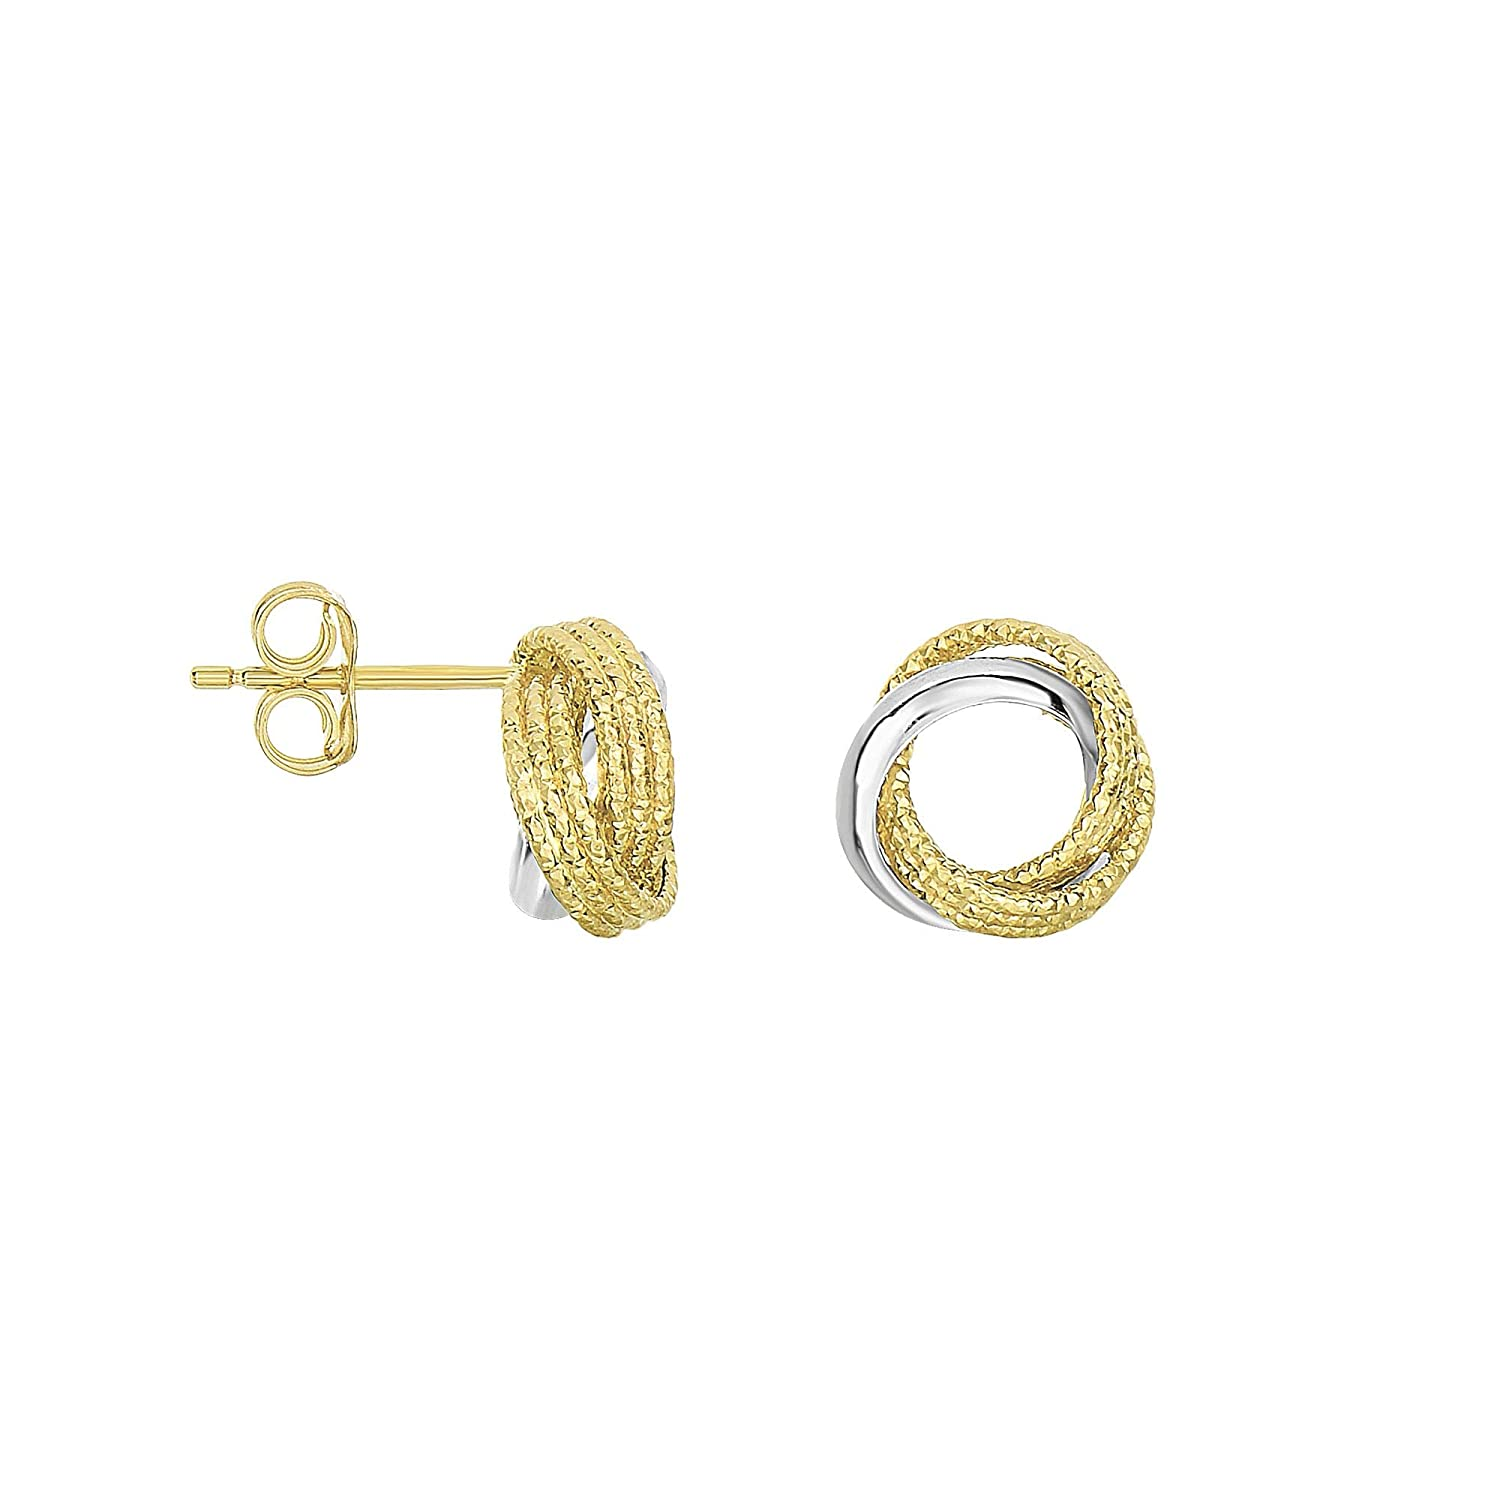 14K Yellow /& White Gold 10.1mm Shiny 3 Circle Swirl Patterned Post Earrings Push Back by IcedTime